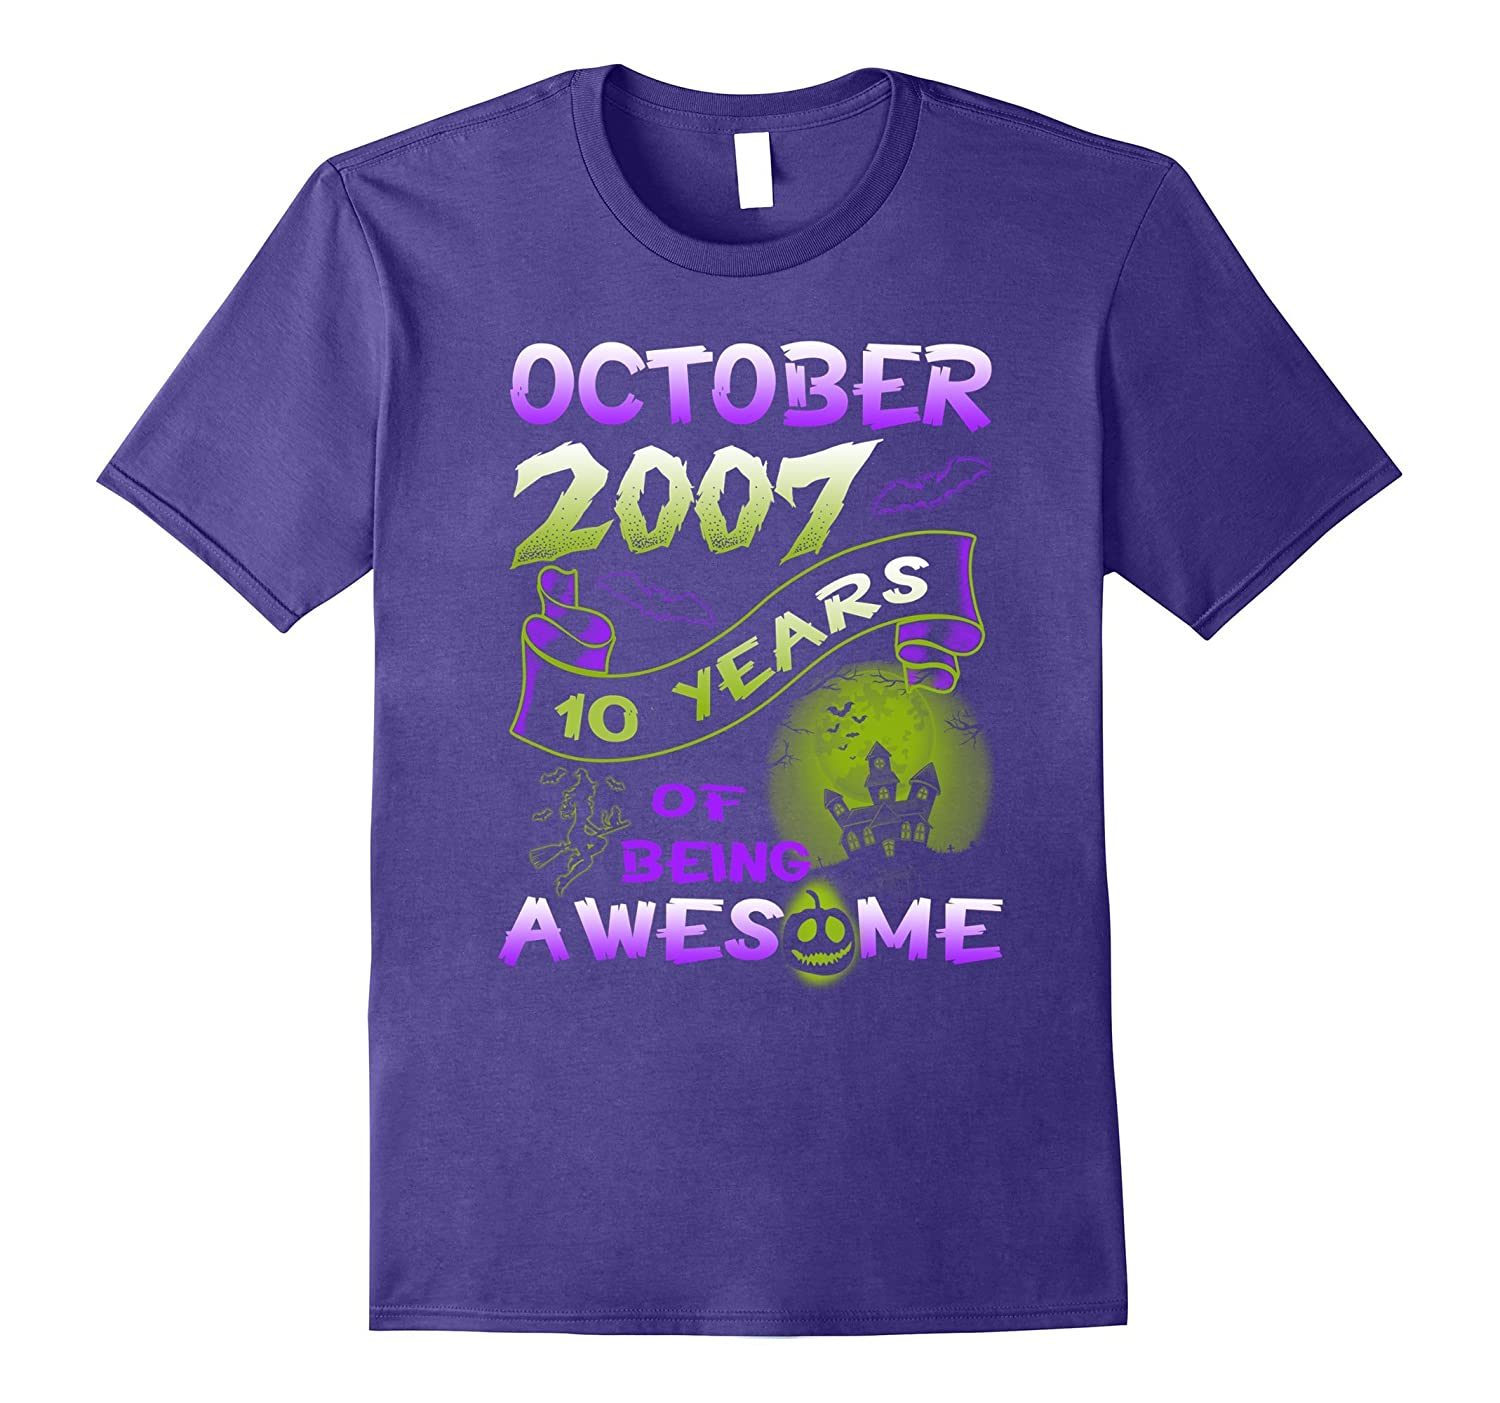 10 years of being awesome - Born in October 2007 Tshirt-T-Shirt